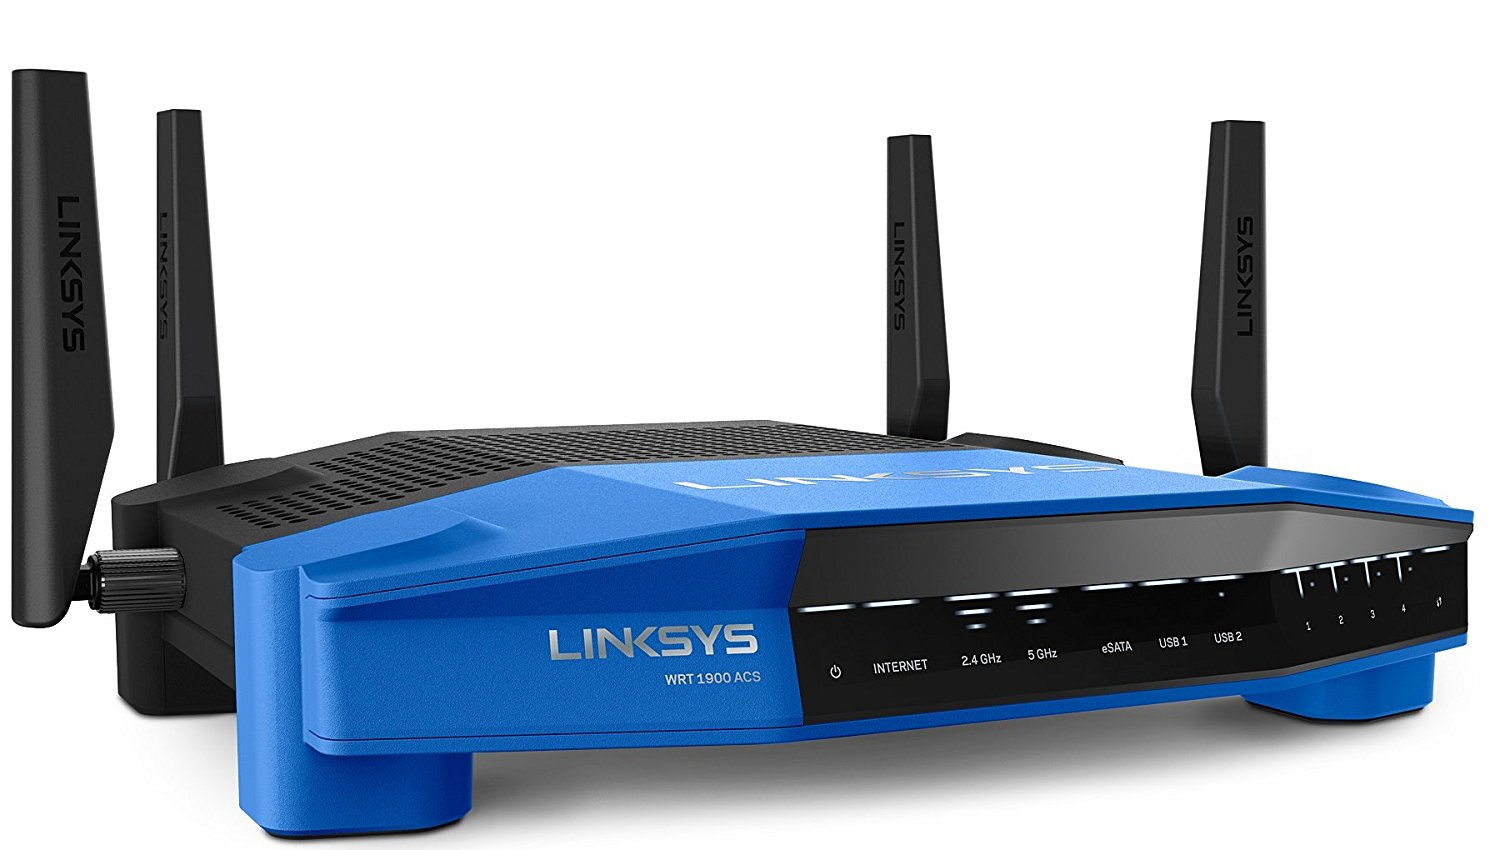 Linksys WRT1900ACS AC1900 Dual-Band Wireless Router (Black)